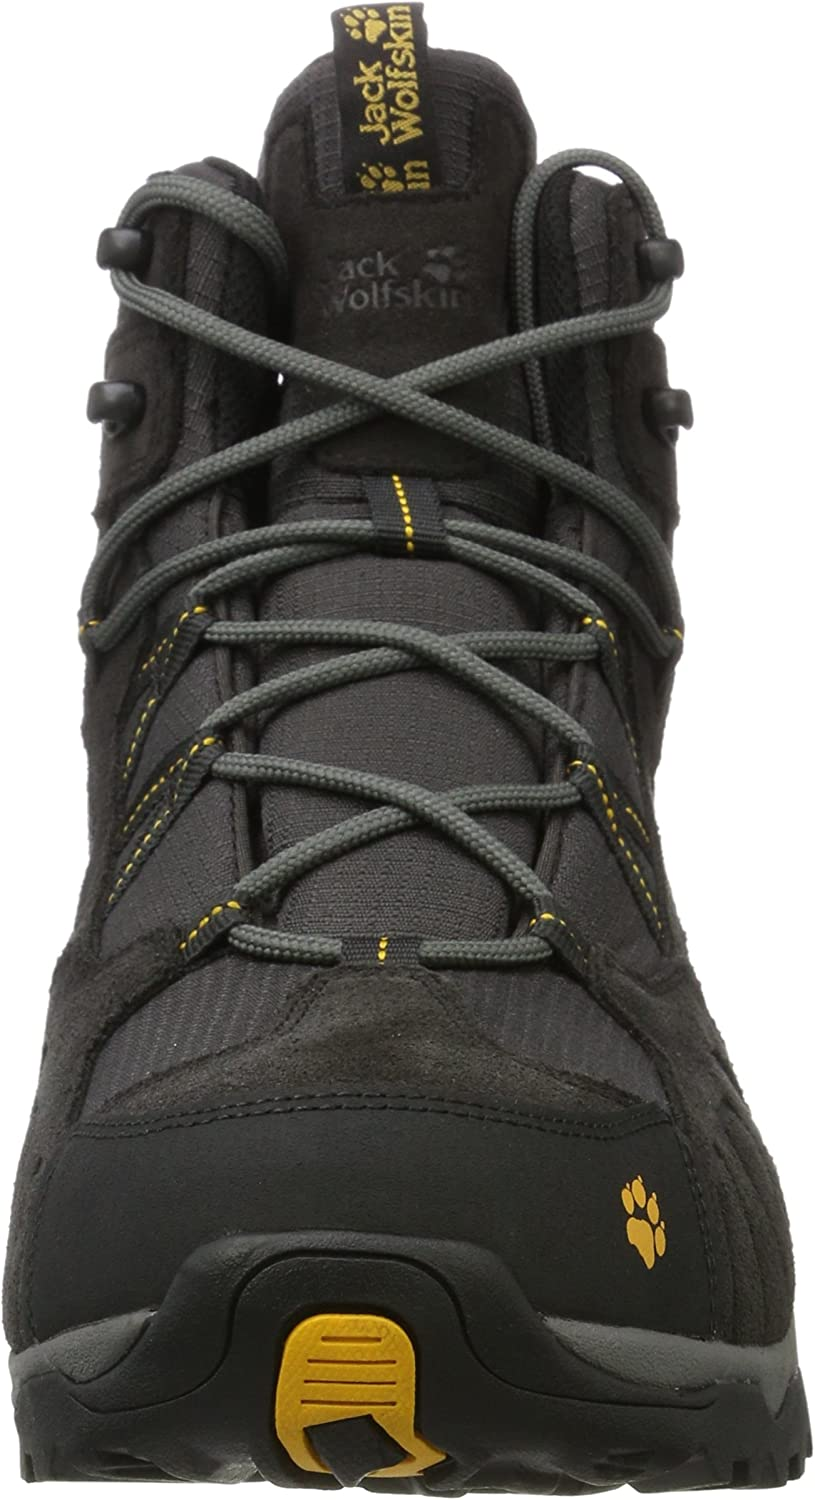 Jack Wolfskin Men/'s Multifunctional Shoes Vojo Hike 2 Low M Black Yellow